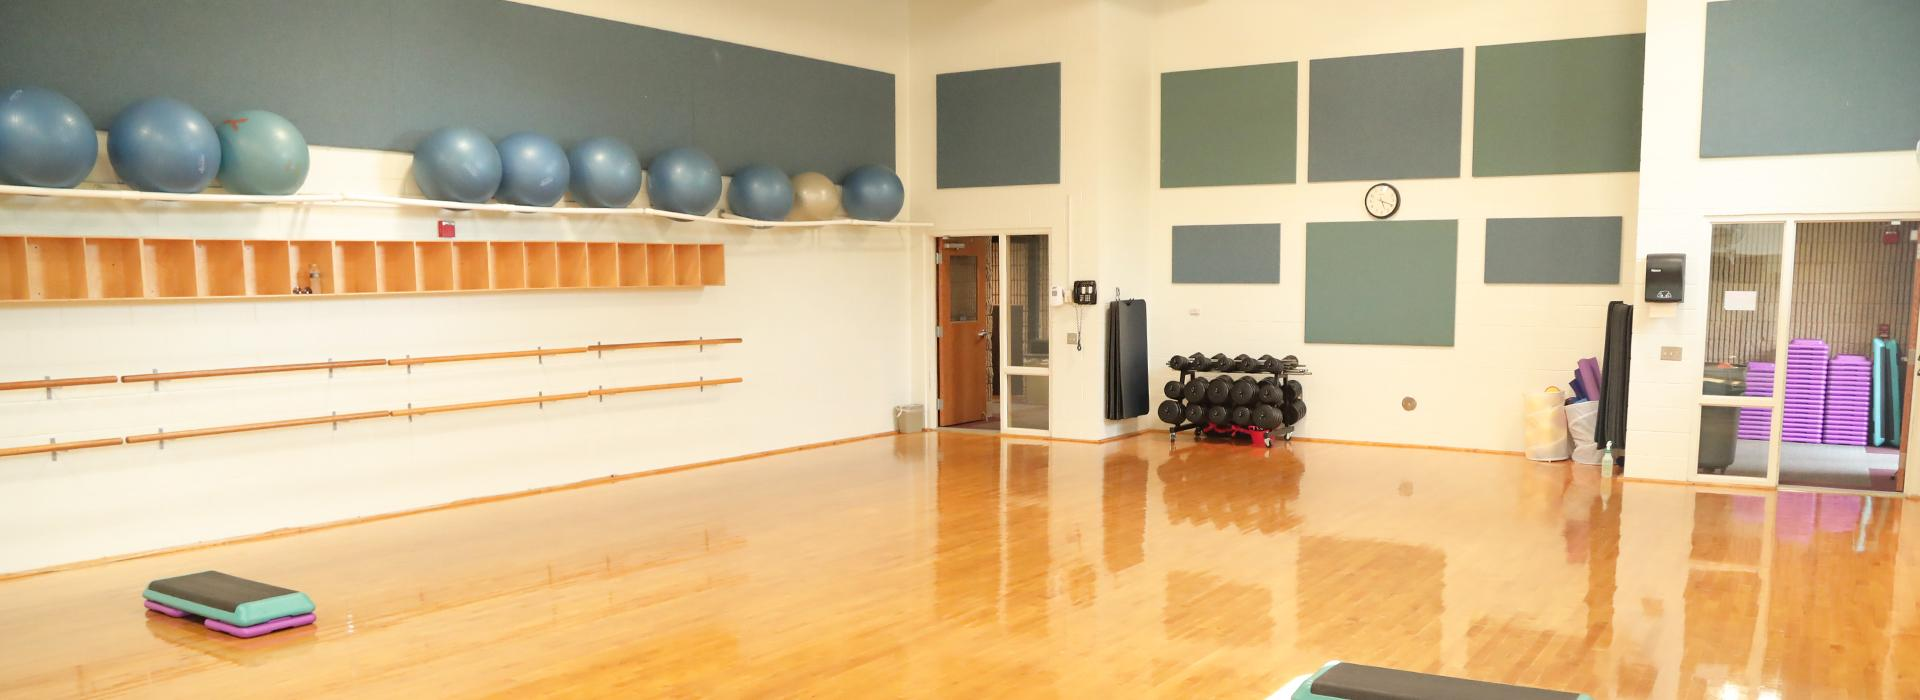 Group exercise space for fitness classes at the Portsmouth YMCA